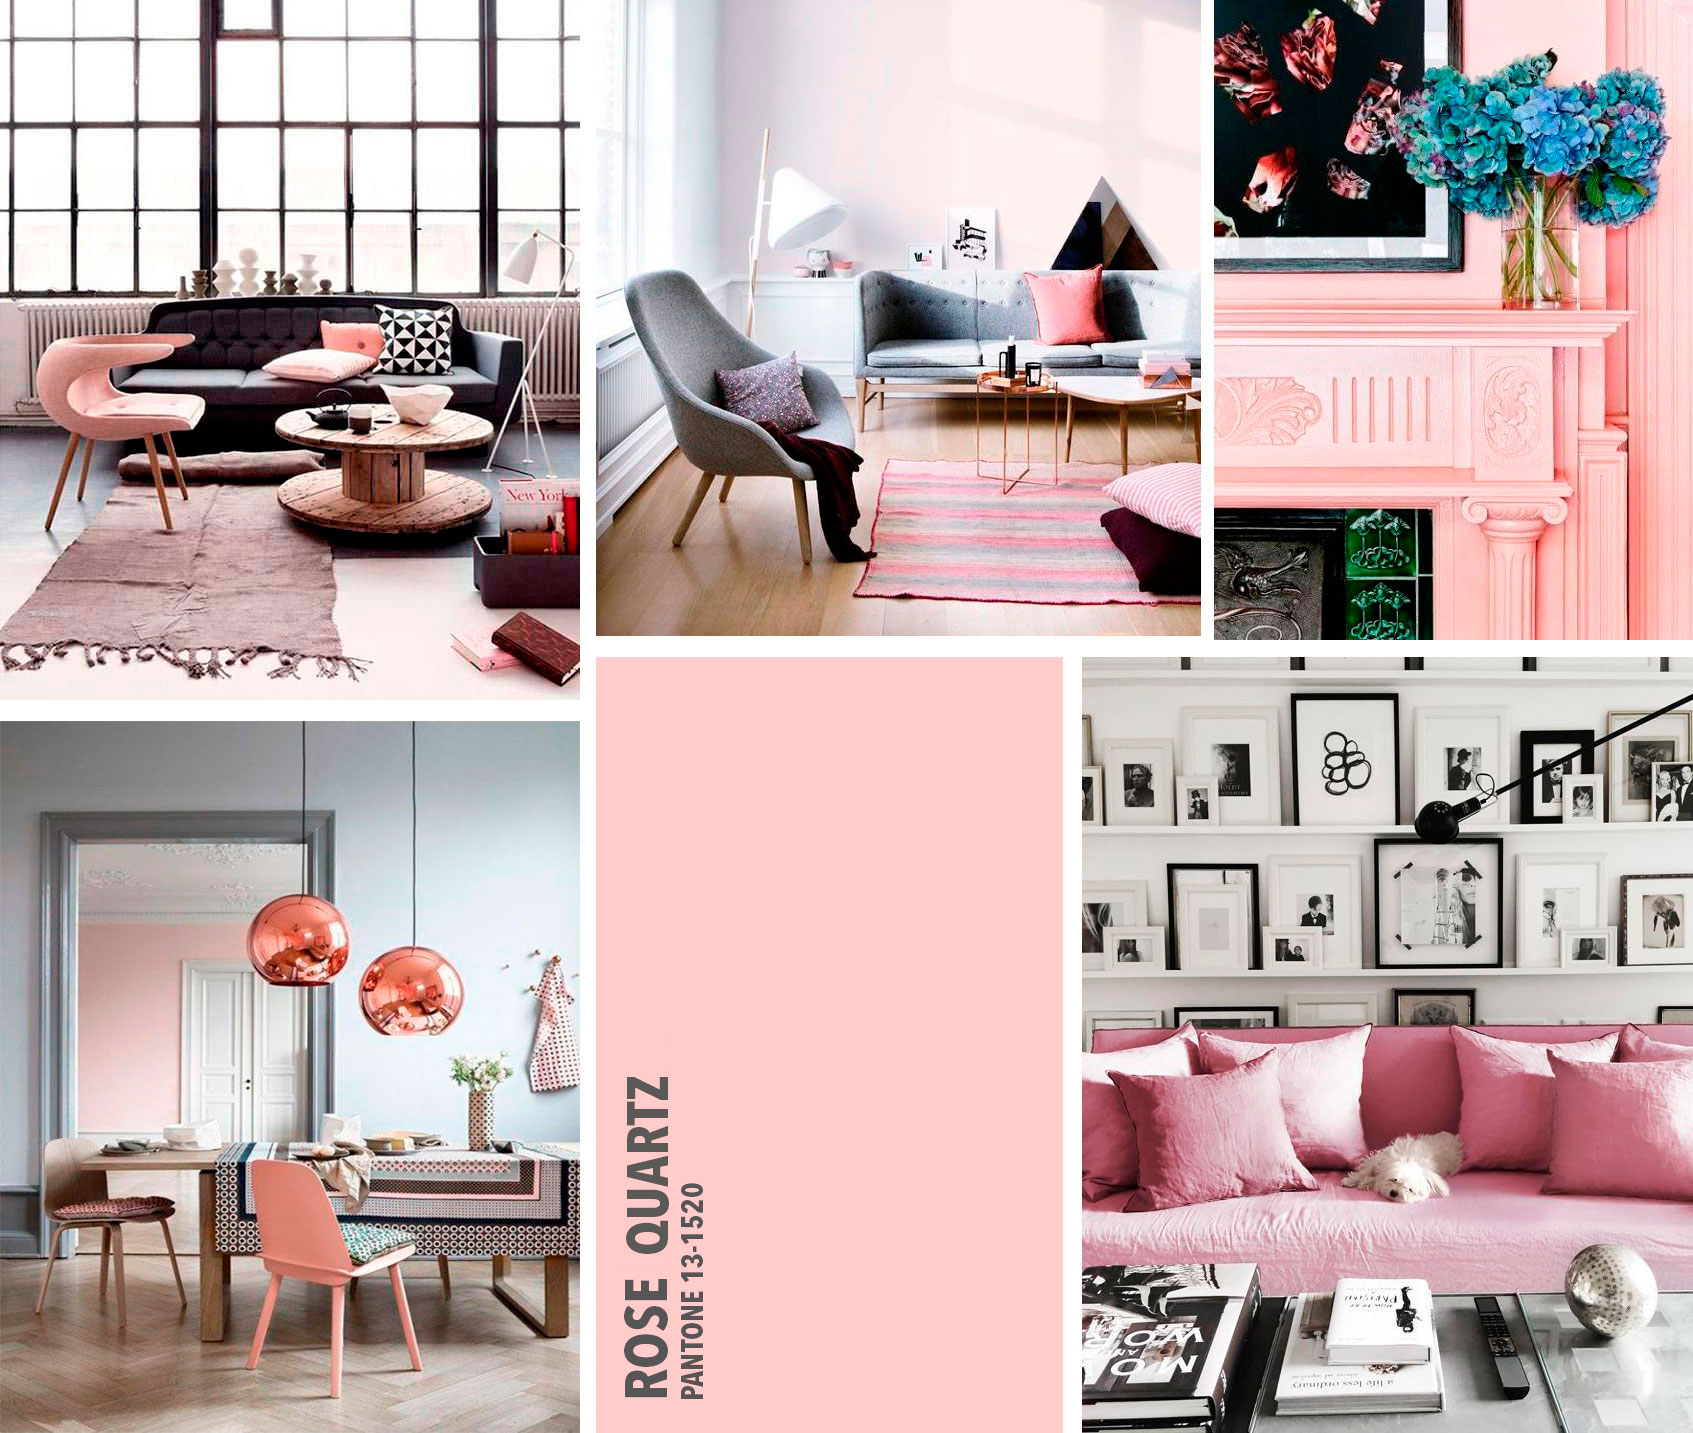 Dta rosa serenidad rose serenity color 2016 tendencias for Decoracion tendencias 2016